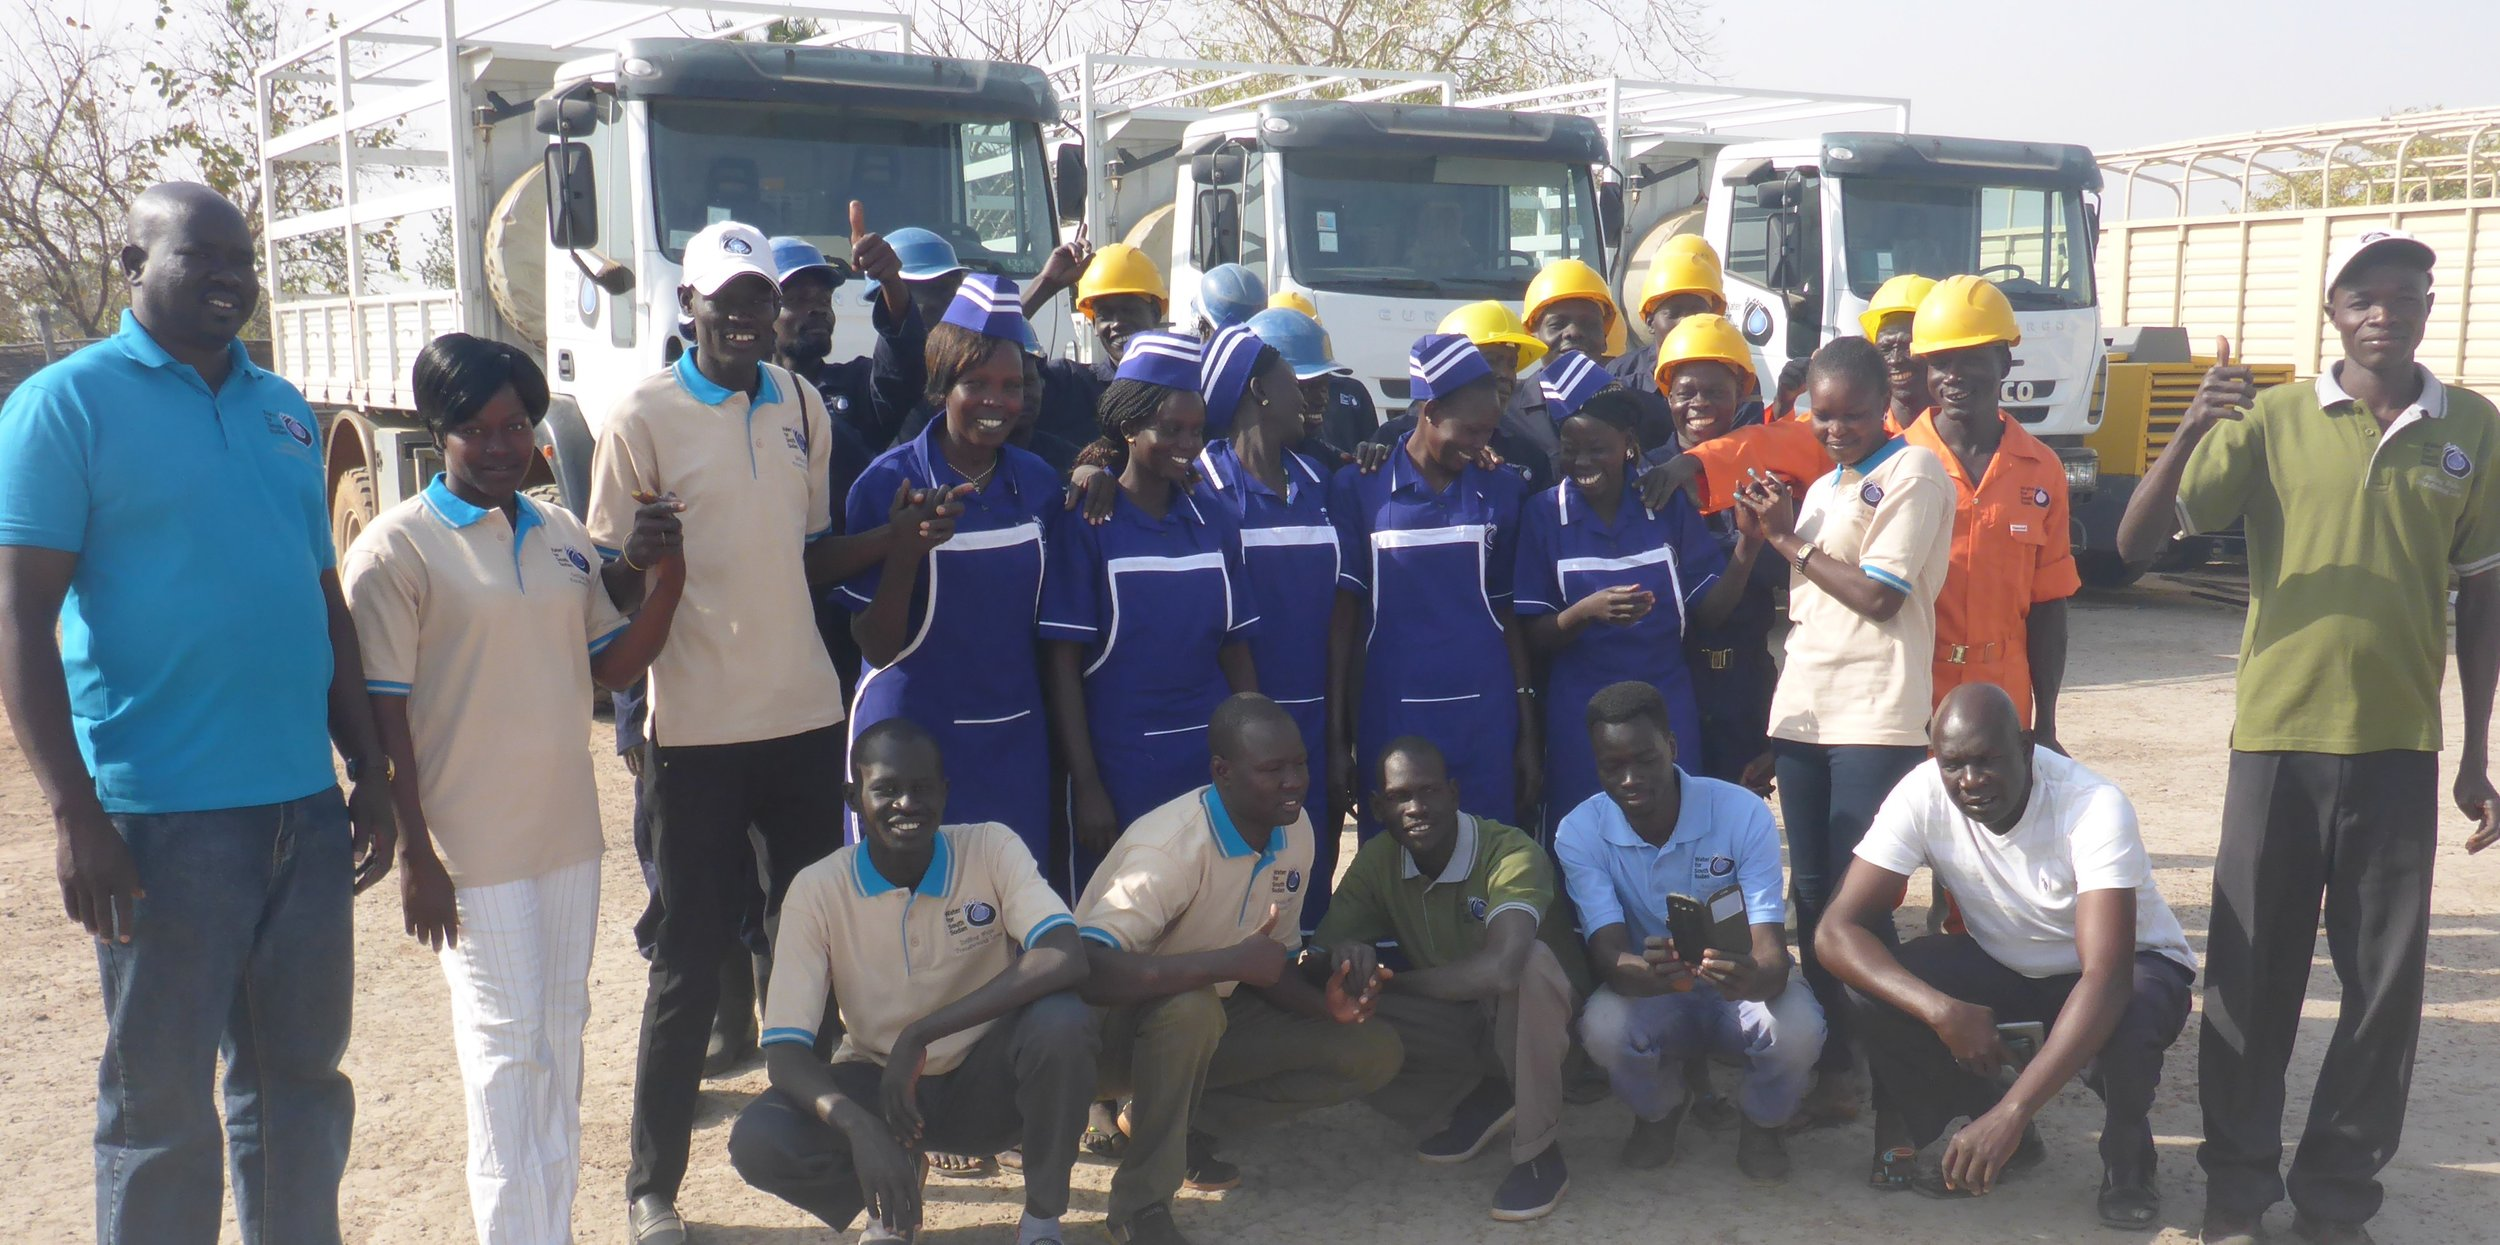 WFSS managers and team members at the WFSS compound in Wau, ready to start the season.